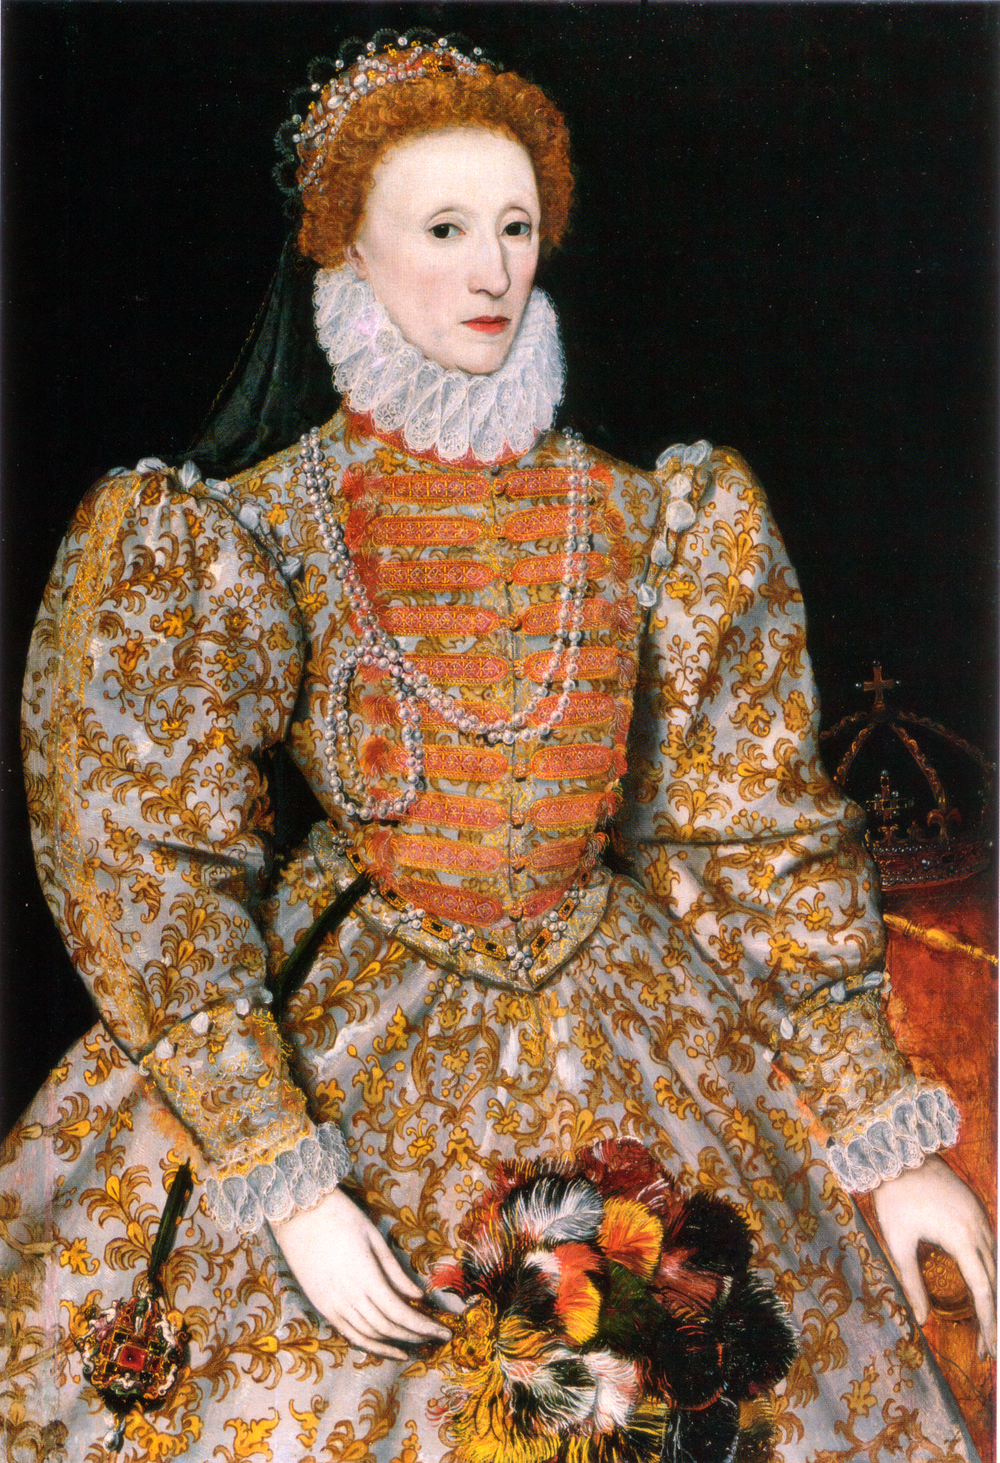 The Darnley Portrait of Queen Elizabeth I, showing her fashionable fair skin.